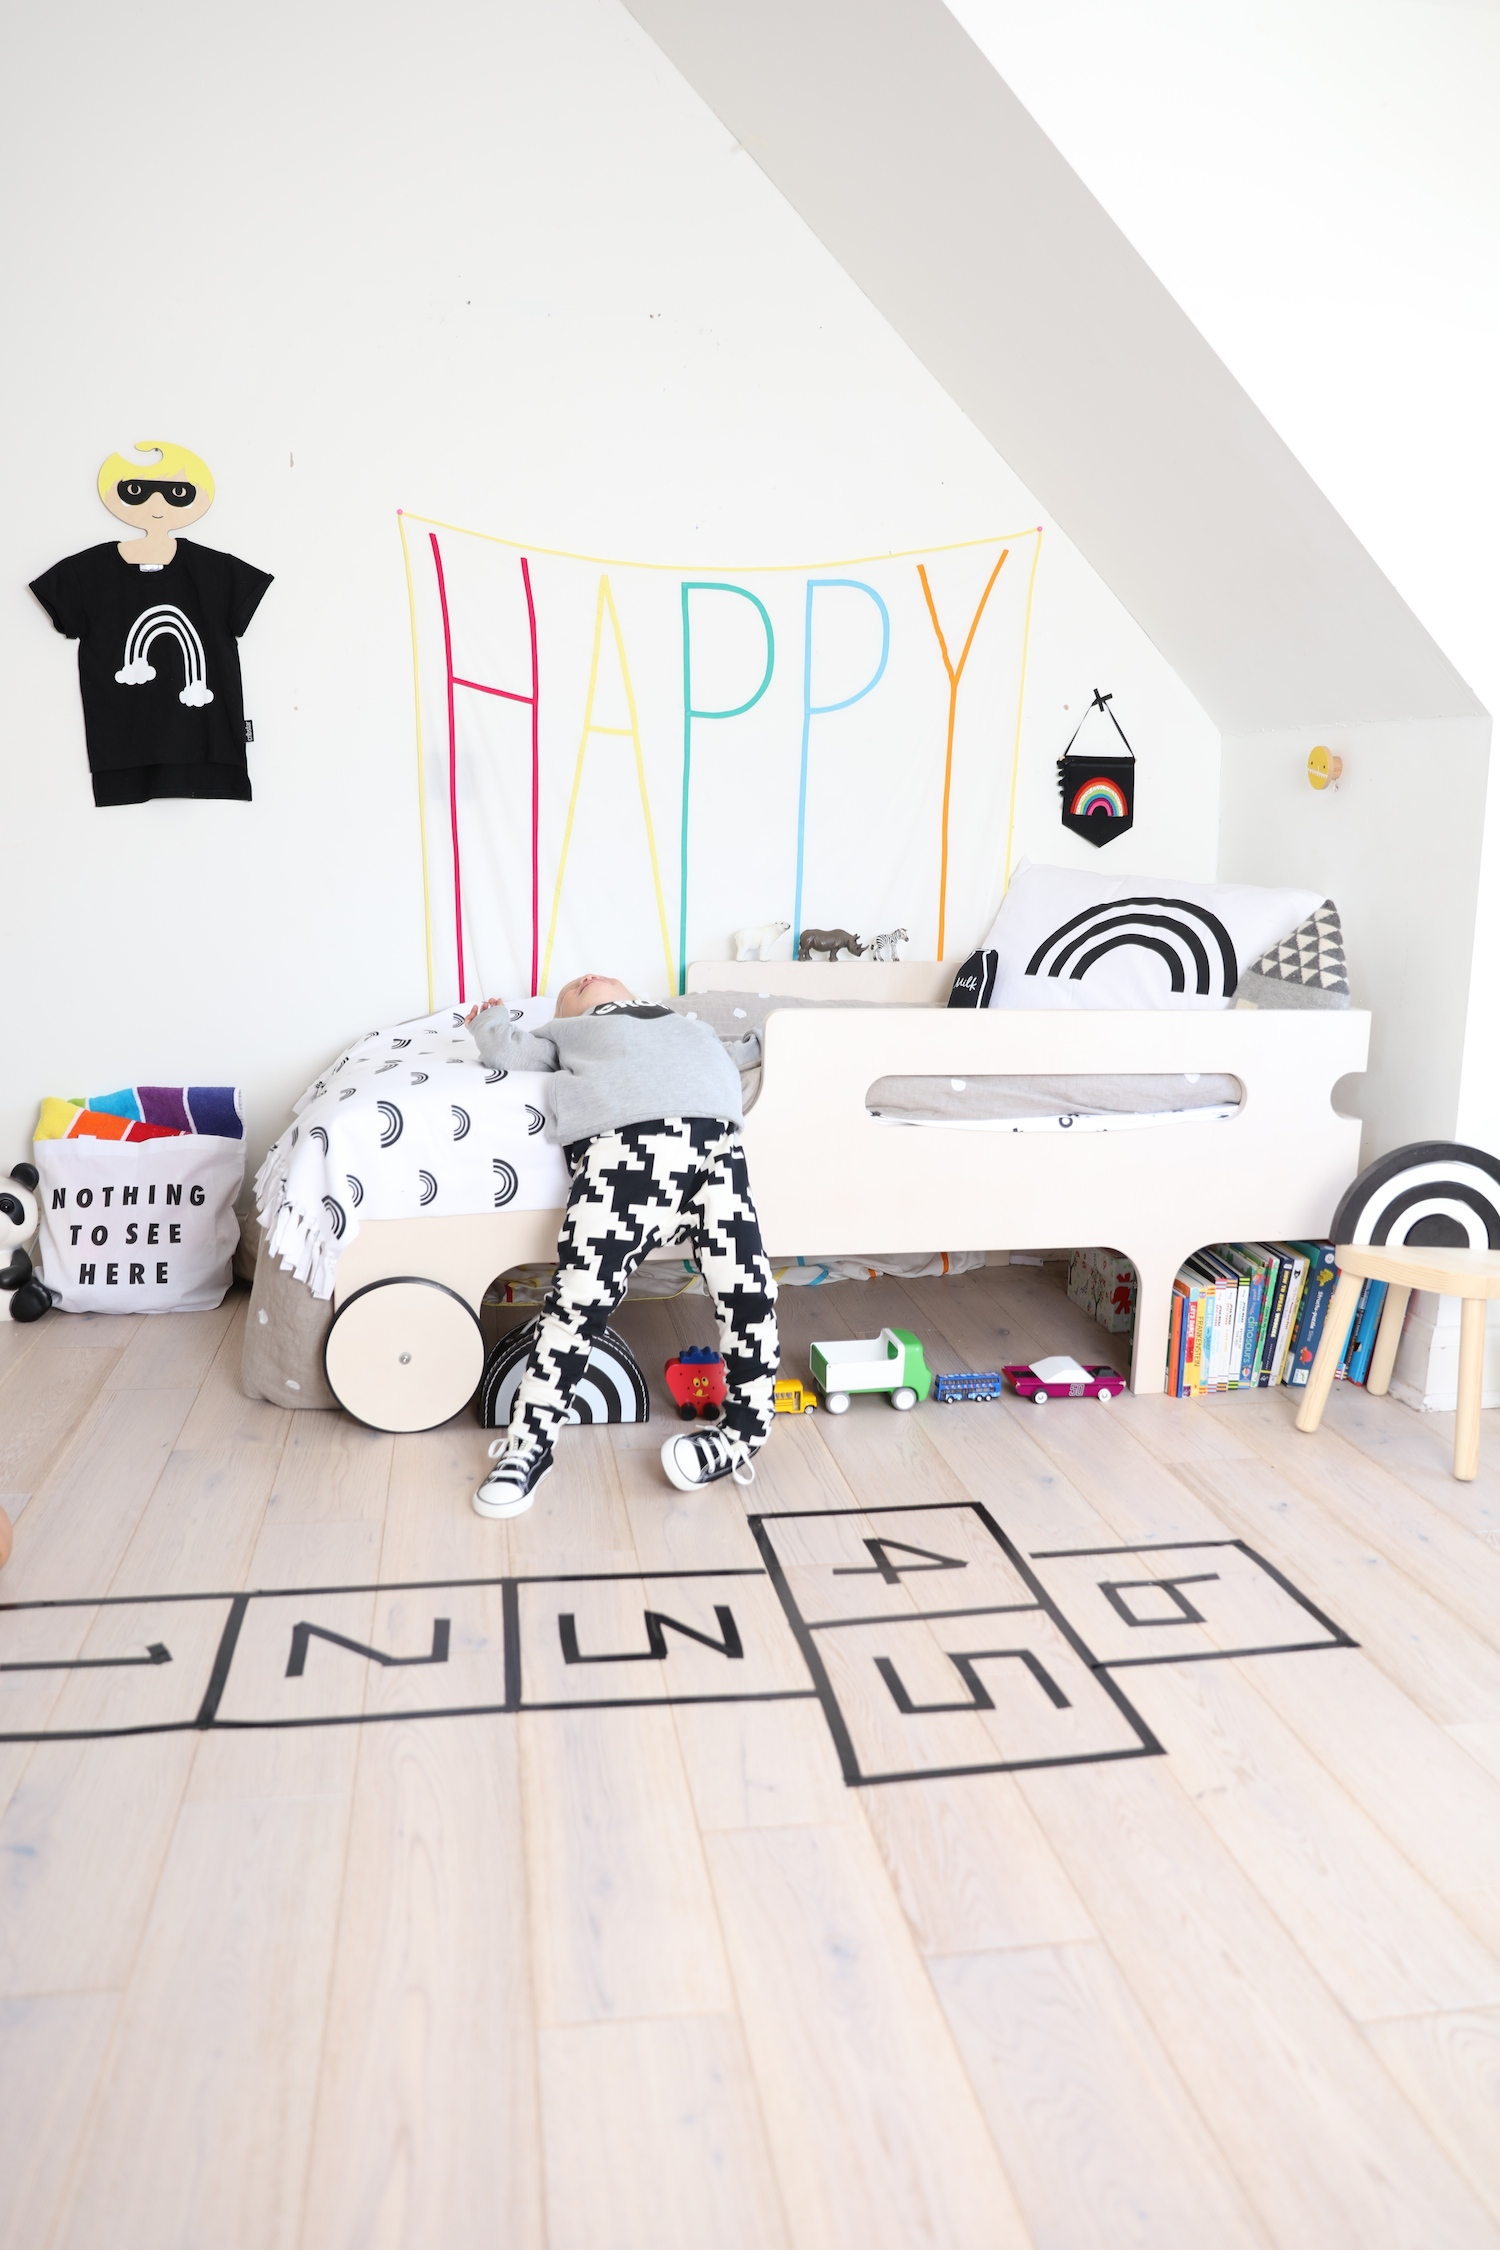 Little_man_happy_trousers-kids_room_jaxon_james